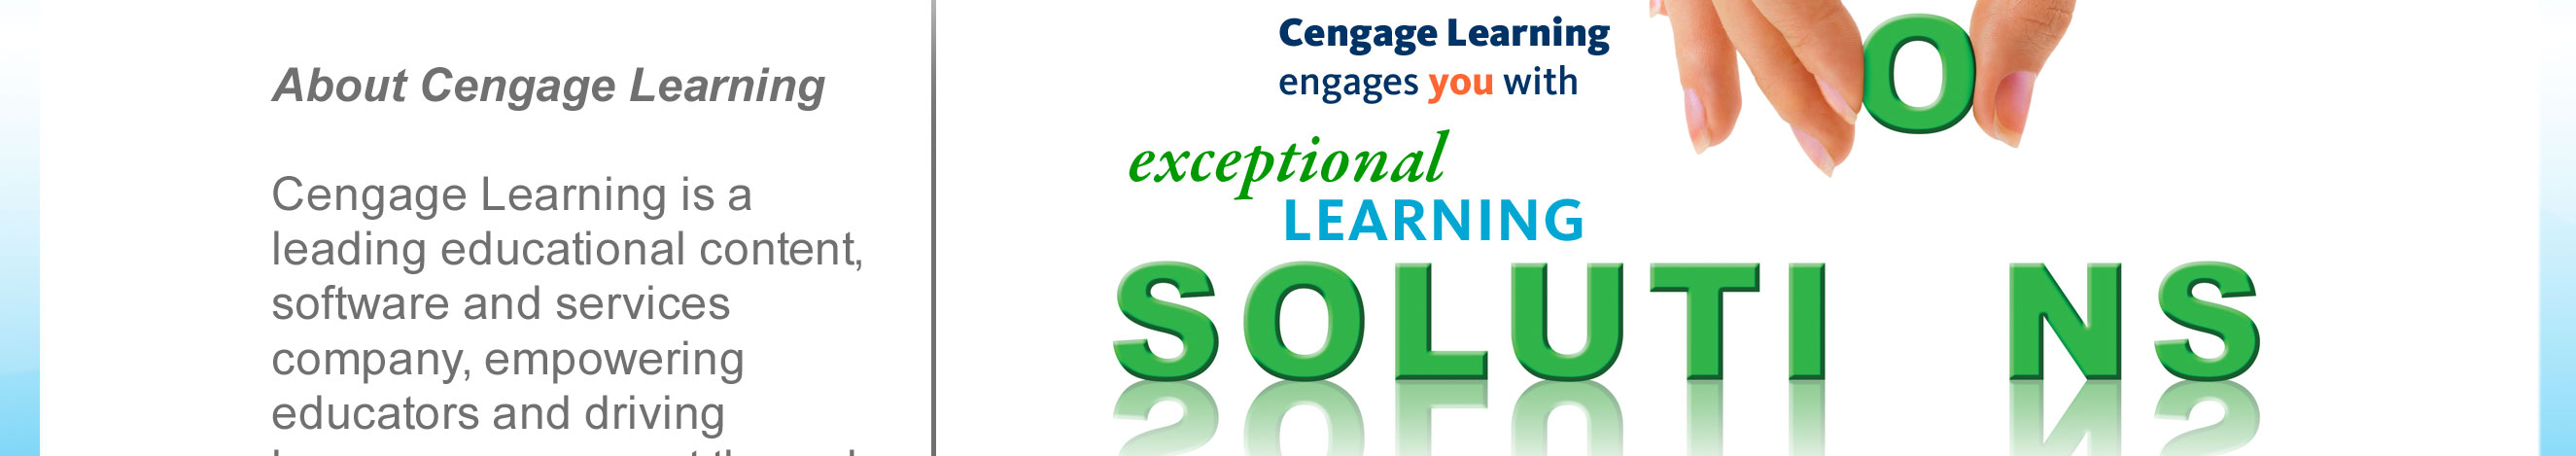 What are some services of Cengage Learning?